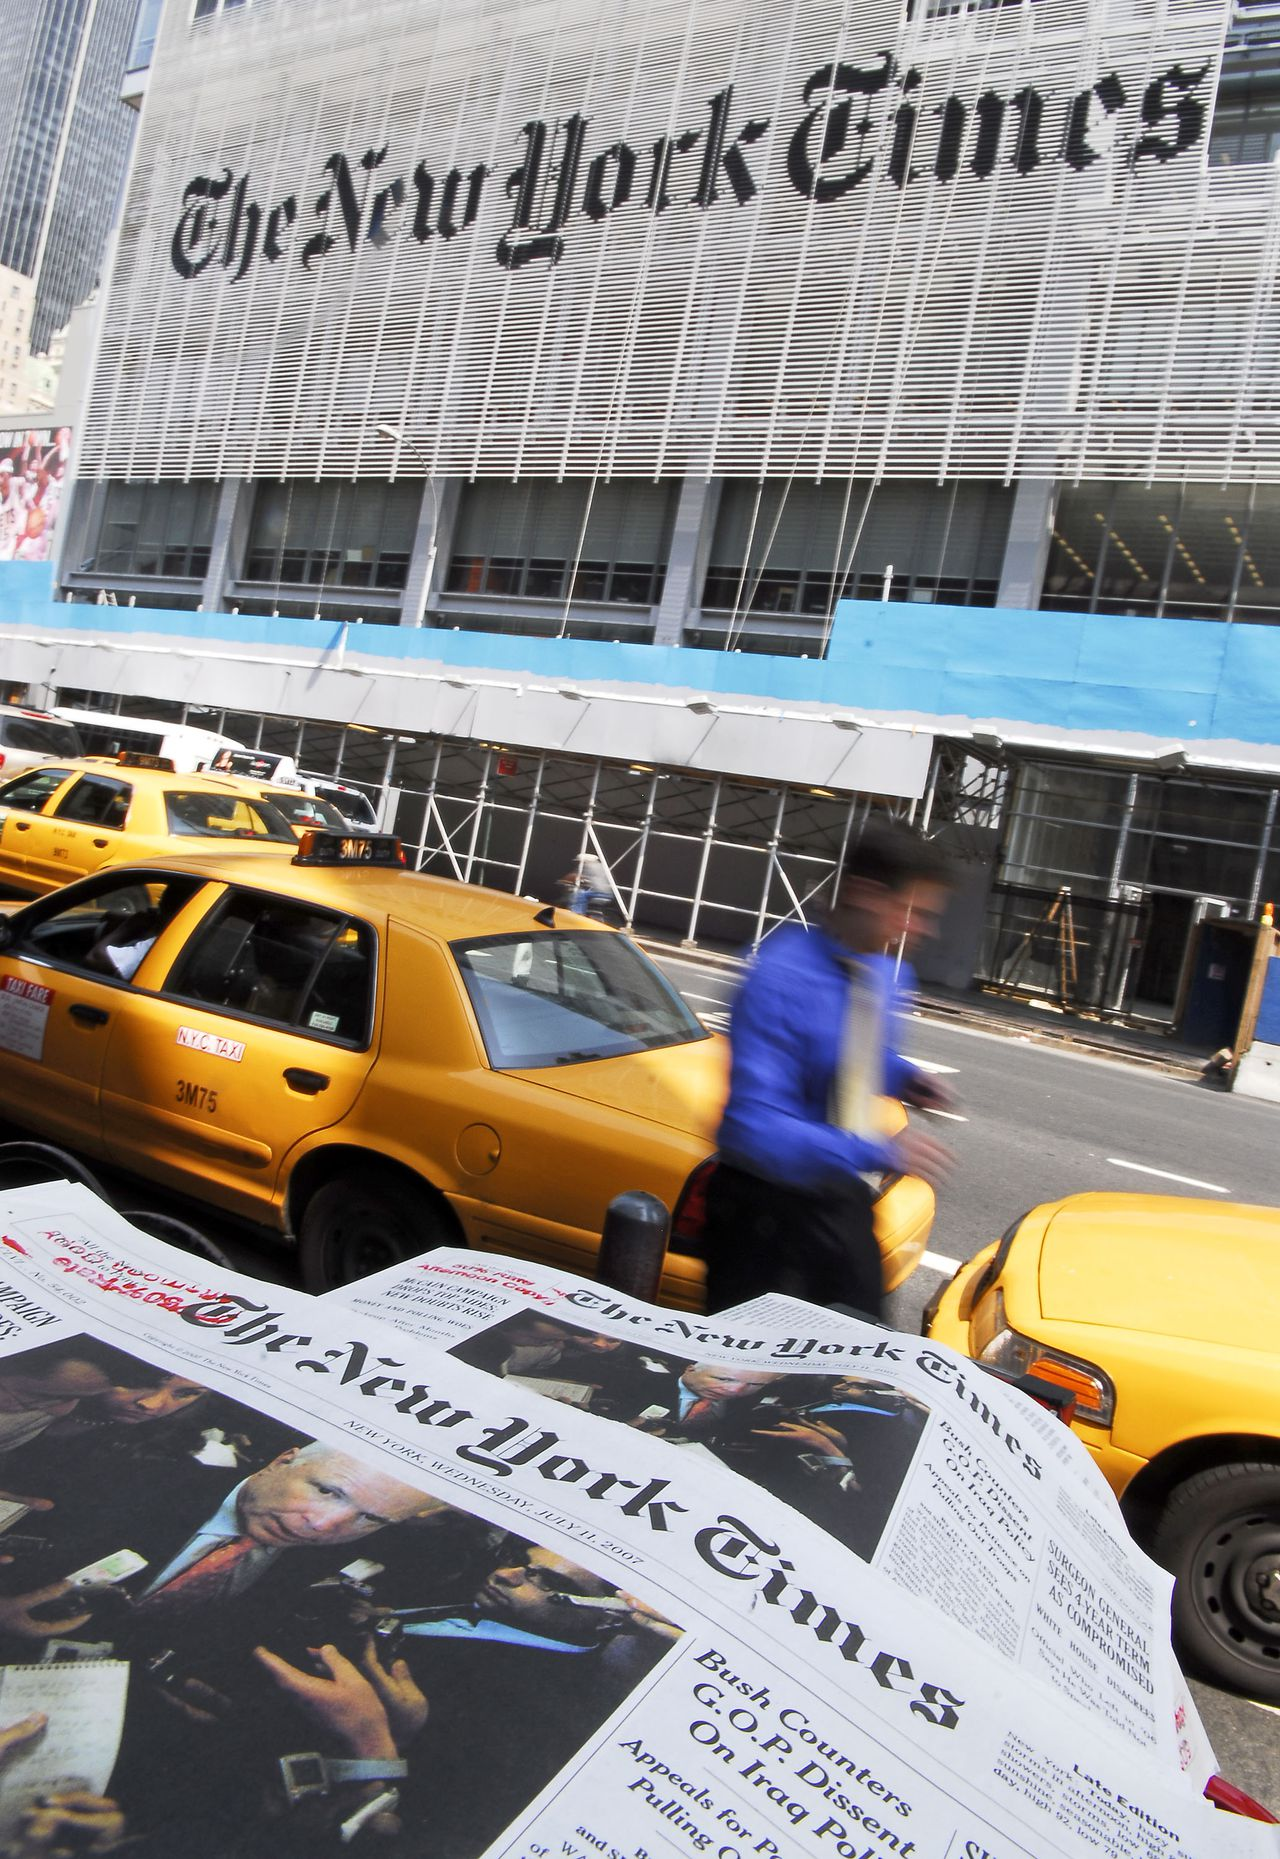 A pedestrian walks past copies of The New York Times that are displayed for sale across the street from The New York Times Building in New York, July 11, 2007. News Corp. Chairman Rupert Murdoch said he will take on the New York Times once his purchase of Dow Jones & Co. is complete by expanding non-business coverage at the Wall Street Journal. Photographer: Andrew Burton/Bloomberg News